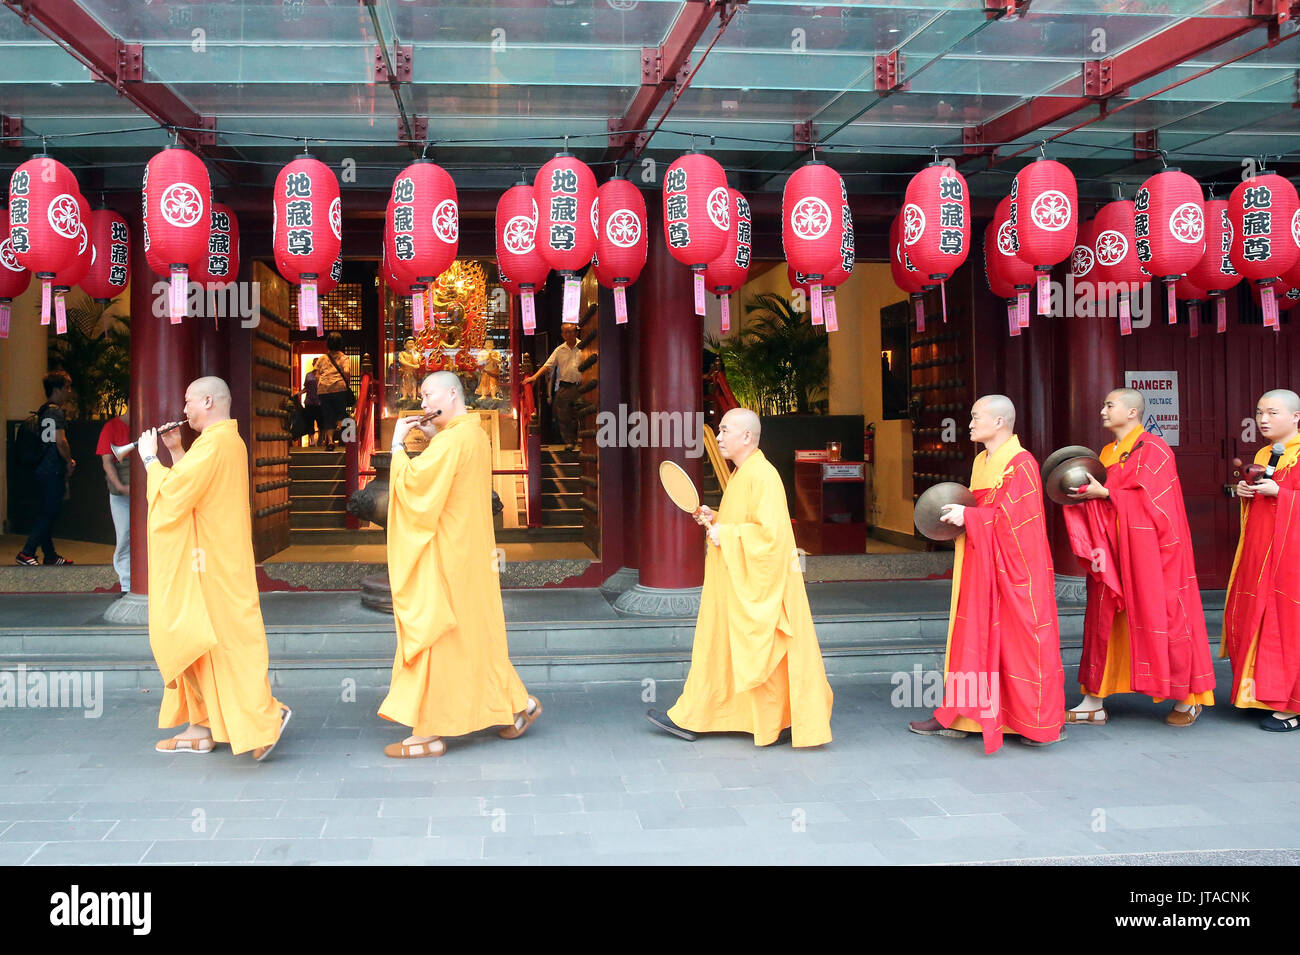 Ullambana ceremony, Buddhist monks' procession, Buddha Tooth Relic Temple, Chinatown, Singapore, Southeast Asia, Asia - Stock Image